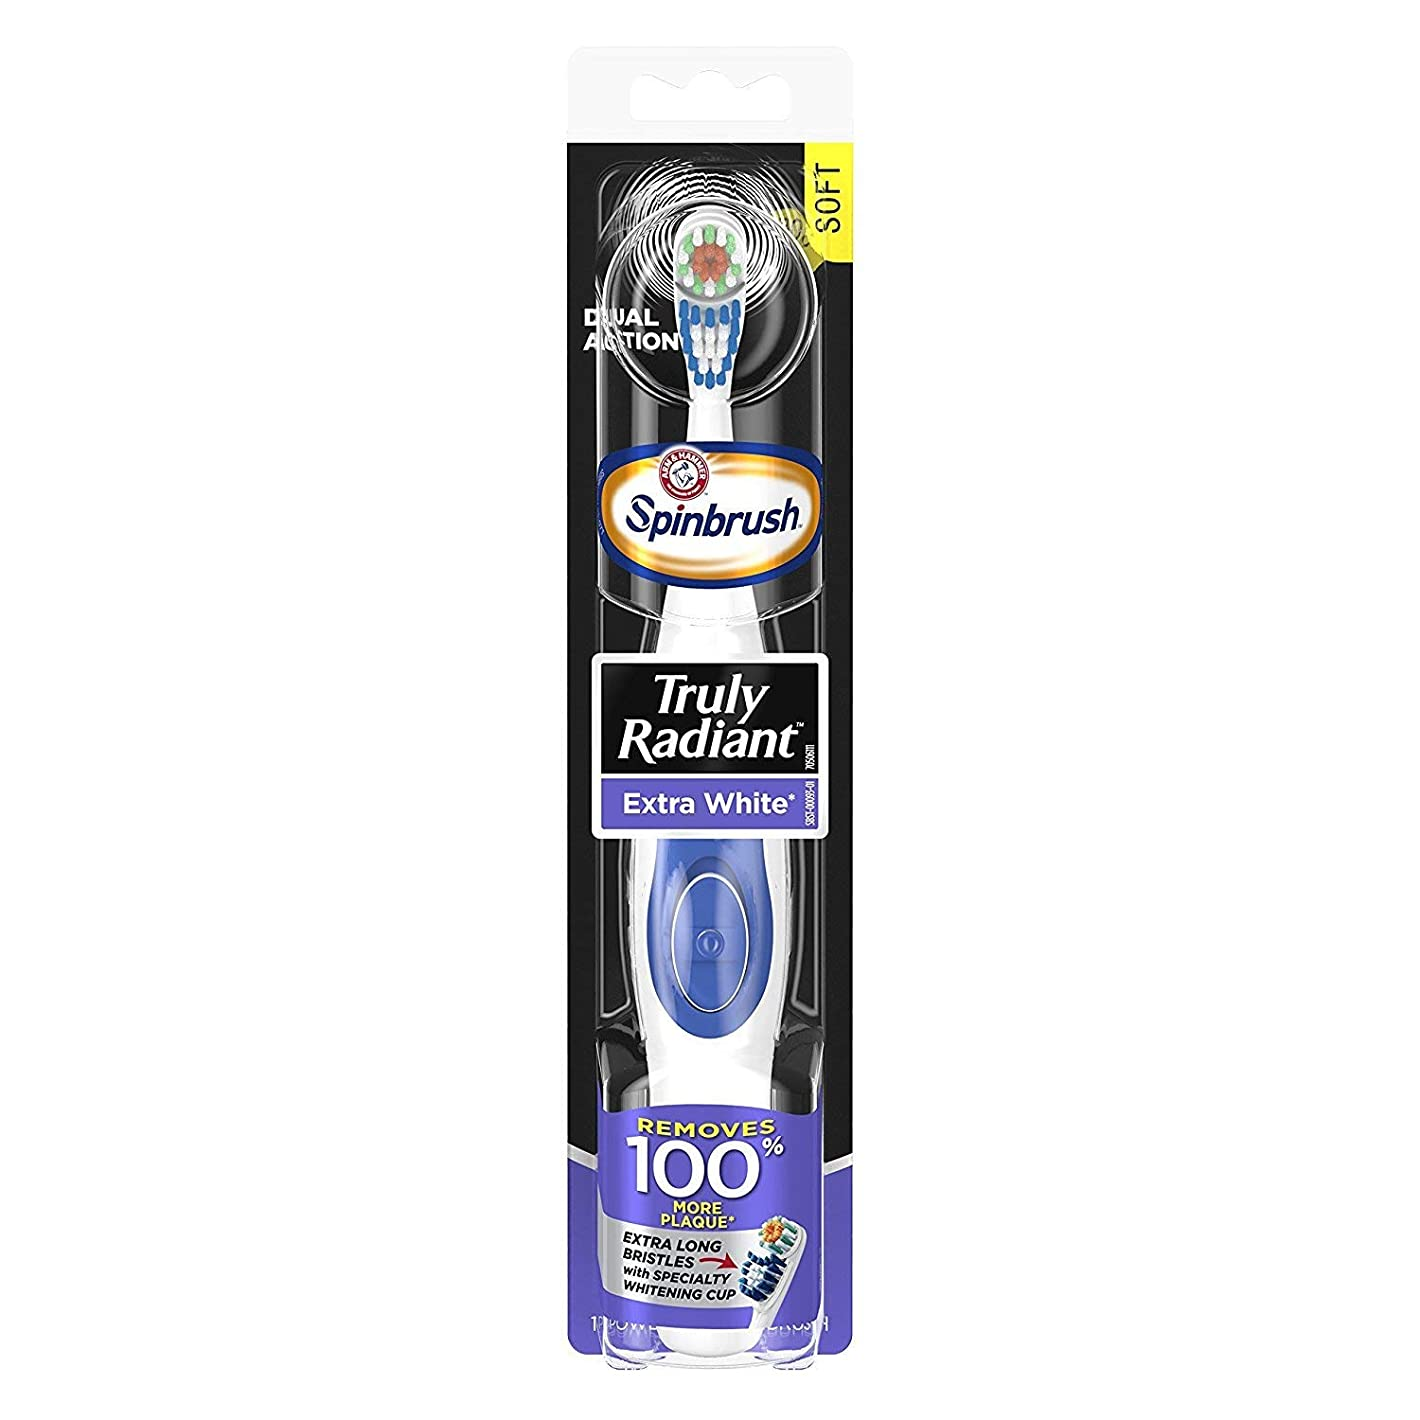 宿題をする水白内障ARM & HAMMER Spinbrush Powered Truly Radiant Toothbrush, Extra White, Soft 1 ea by Arm & Hammer